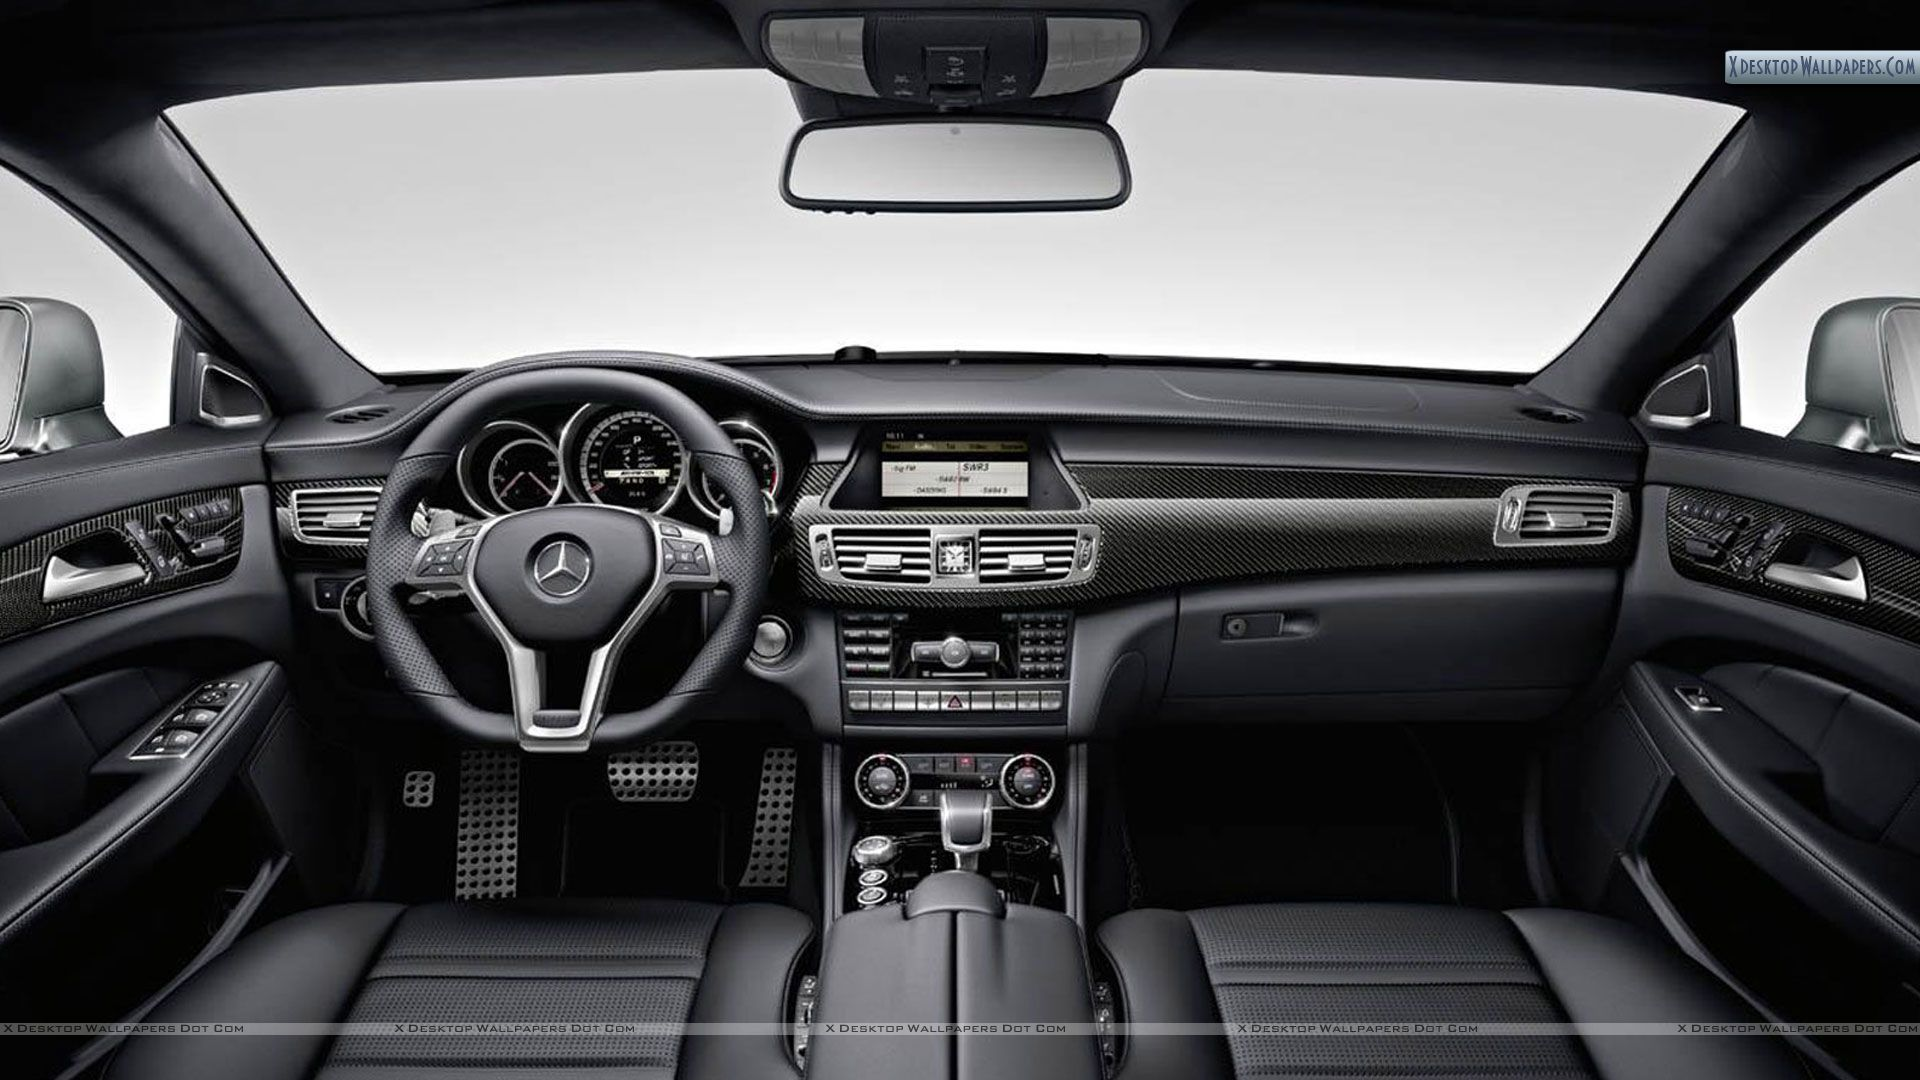 2012 mercedes benz cls63 amg interior shoot wallpaper Interieur mercedes